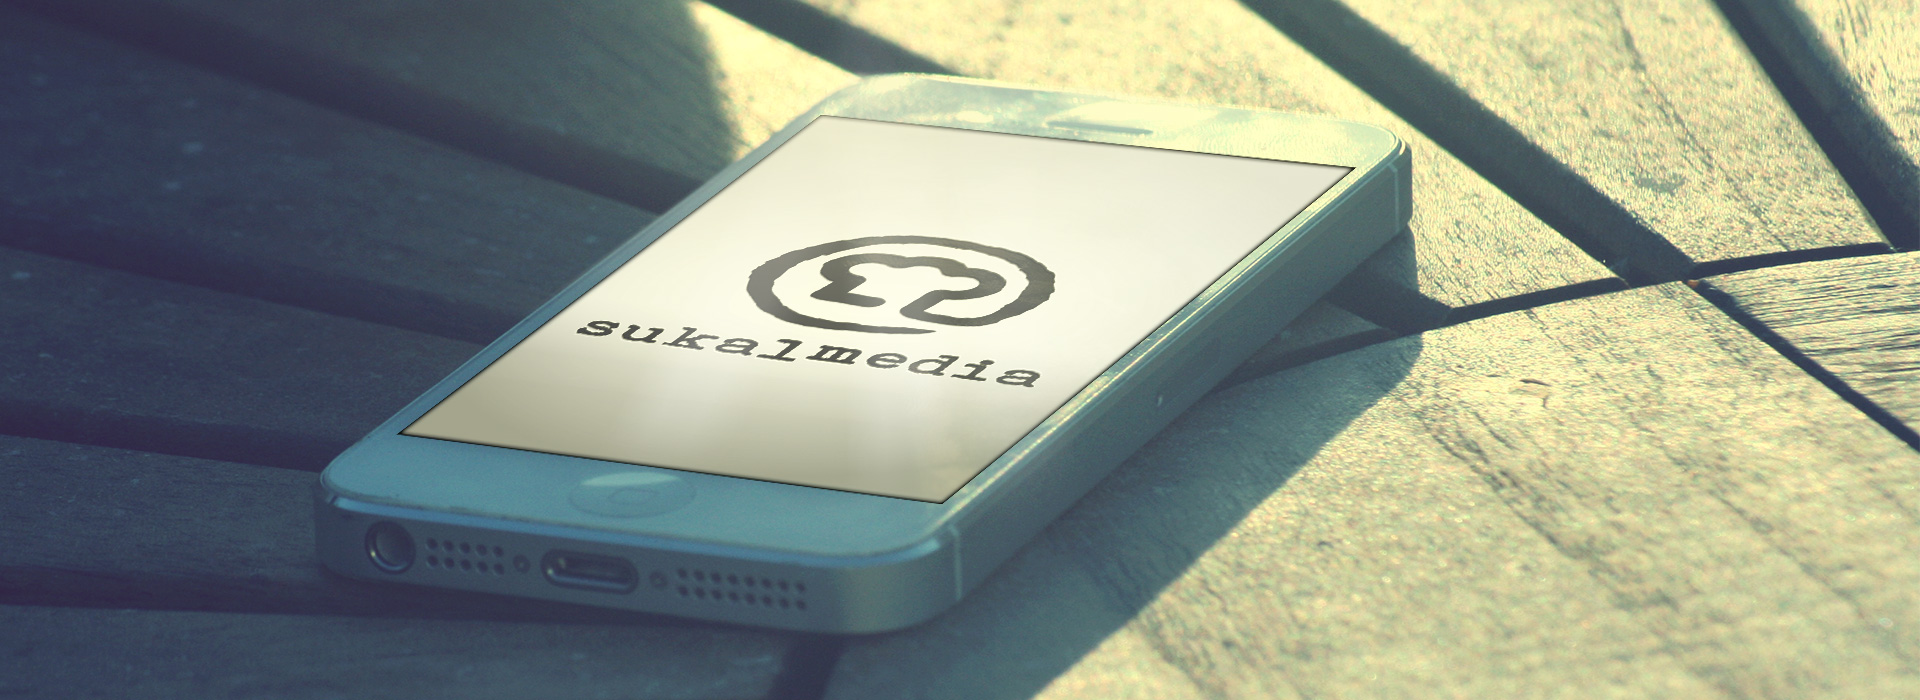 Sukalmedia | Agencia de Comunicación Creativa y Social Media Marketing de Bilbao